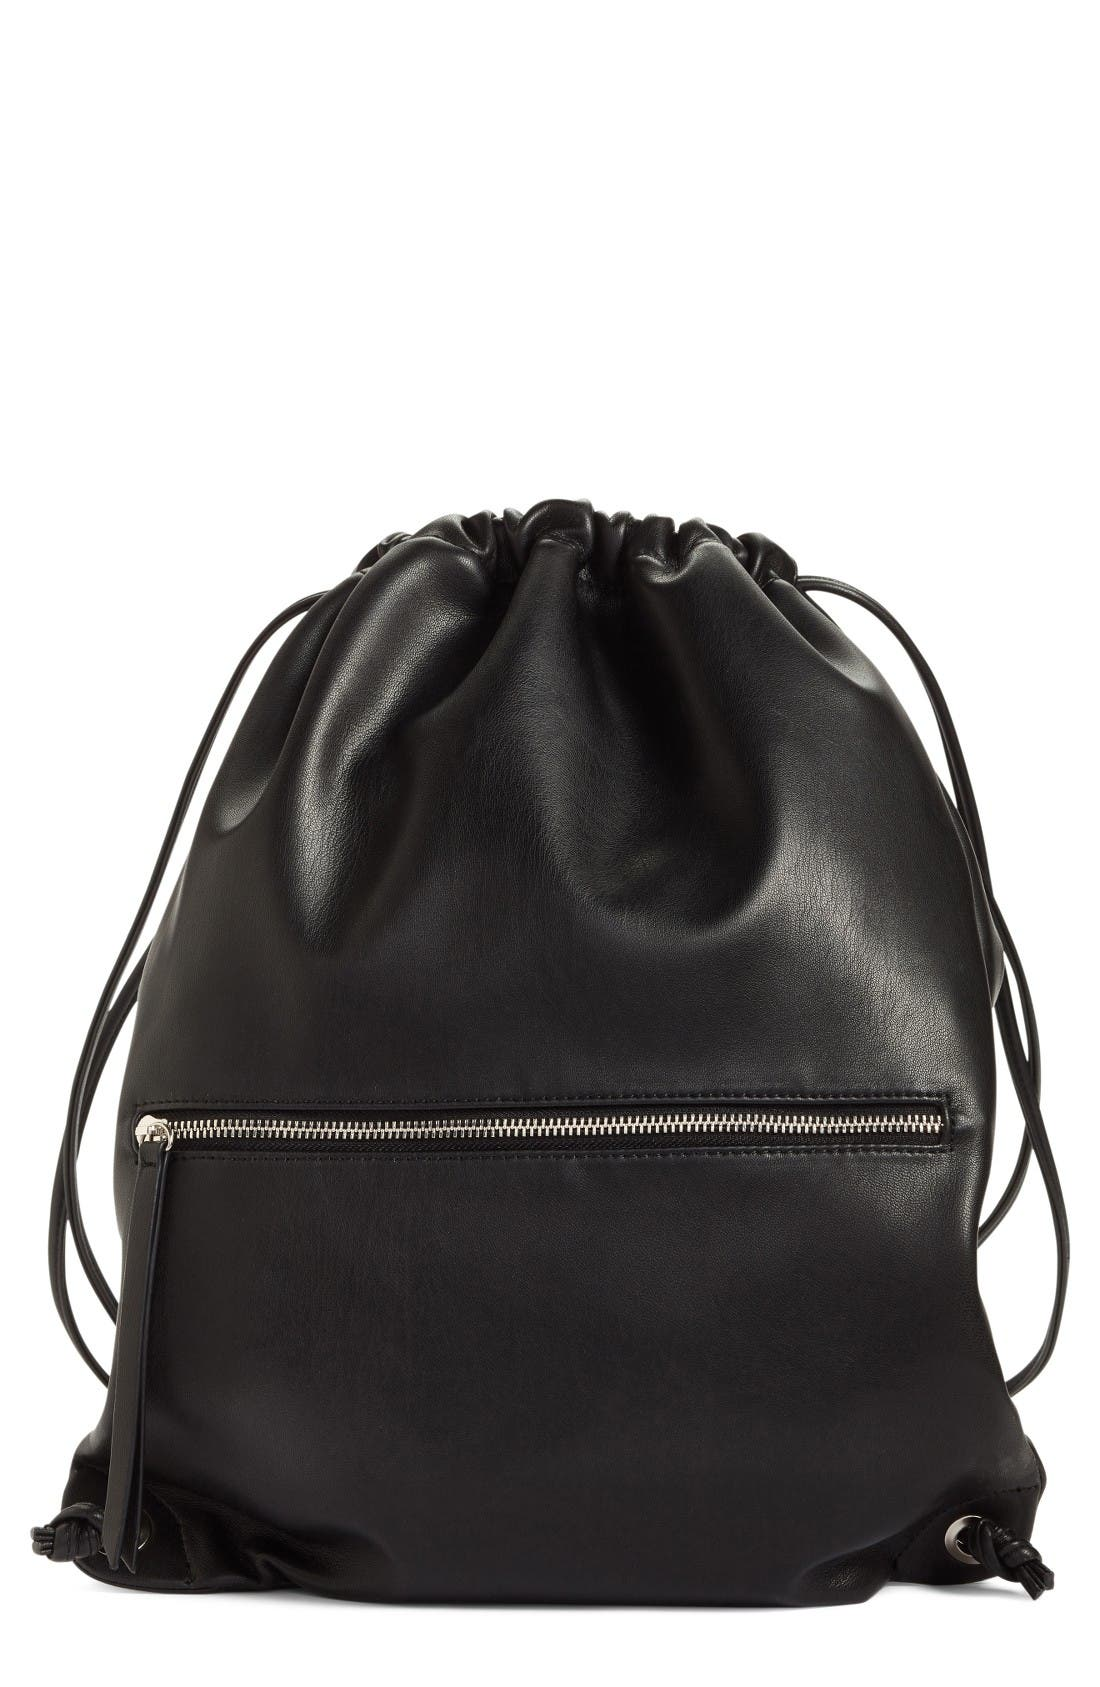 Main Image - Phase 3 Faux Leather Sling Backpack